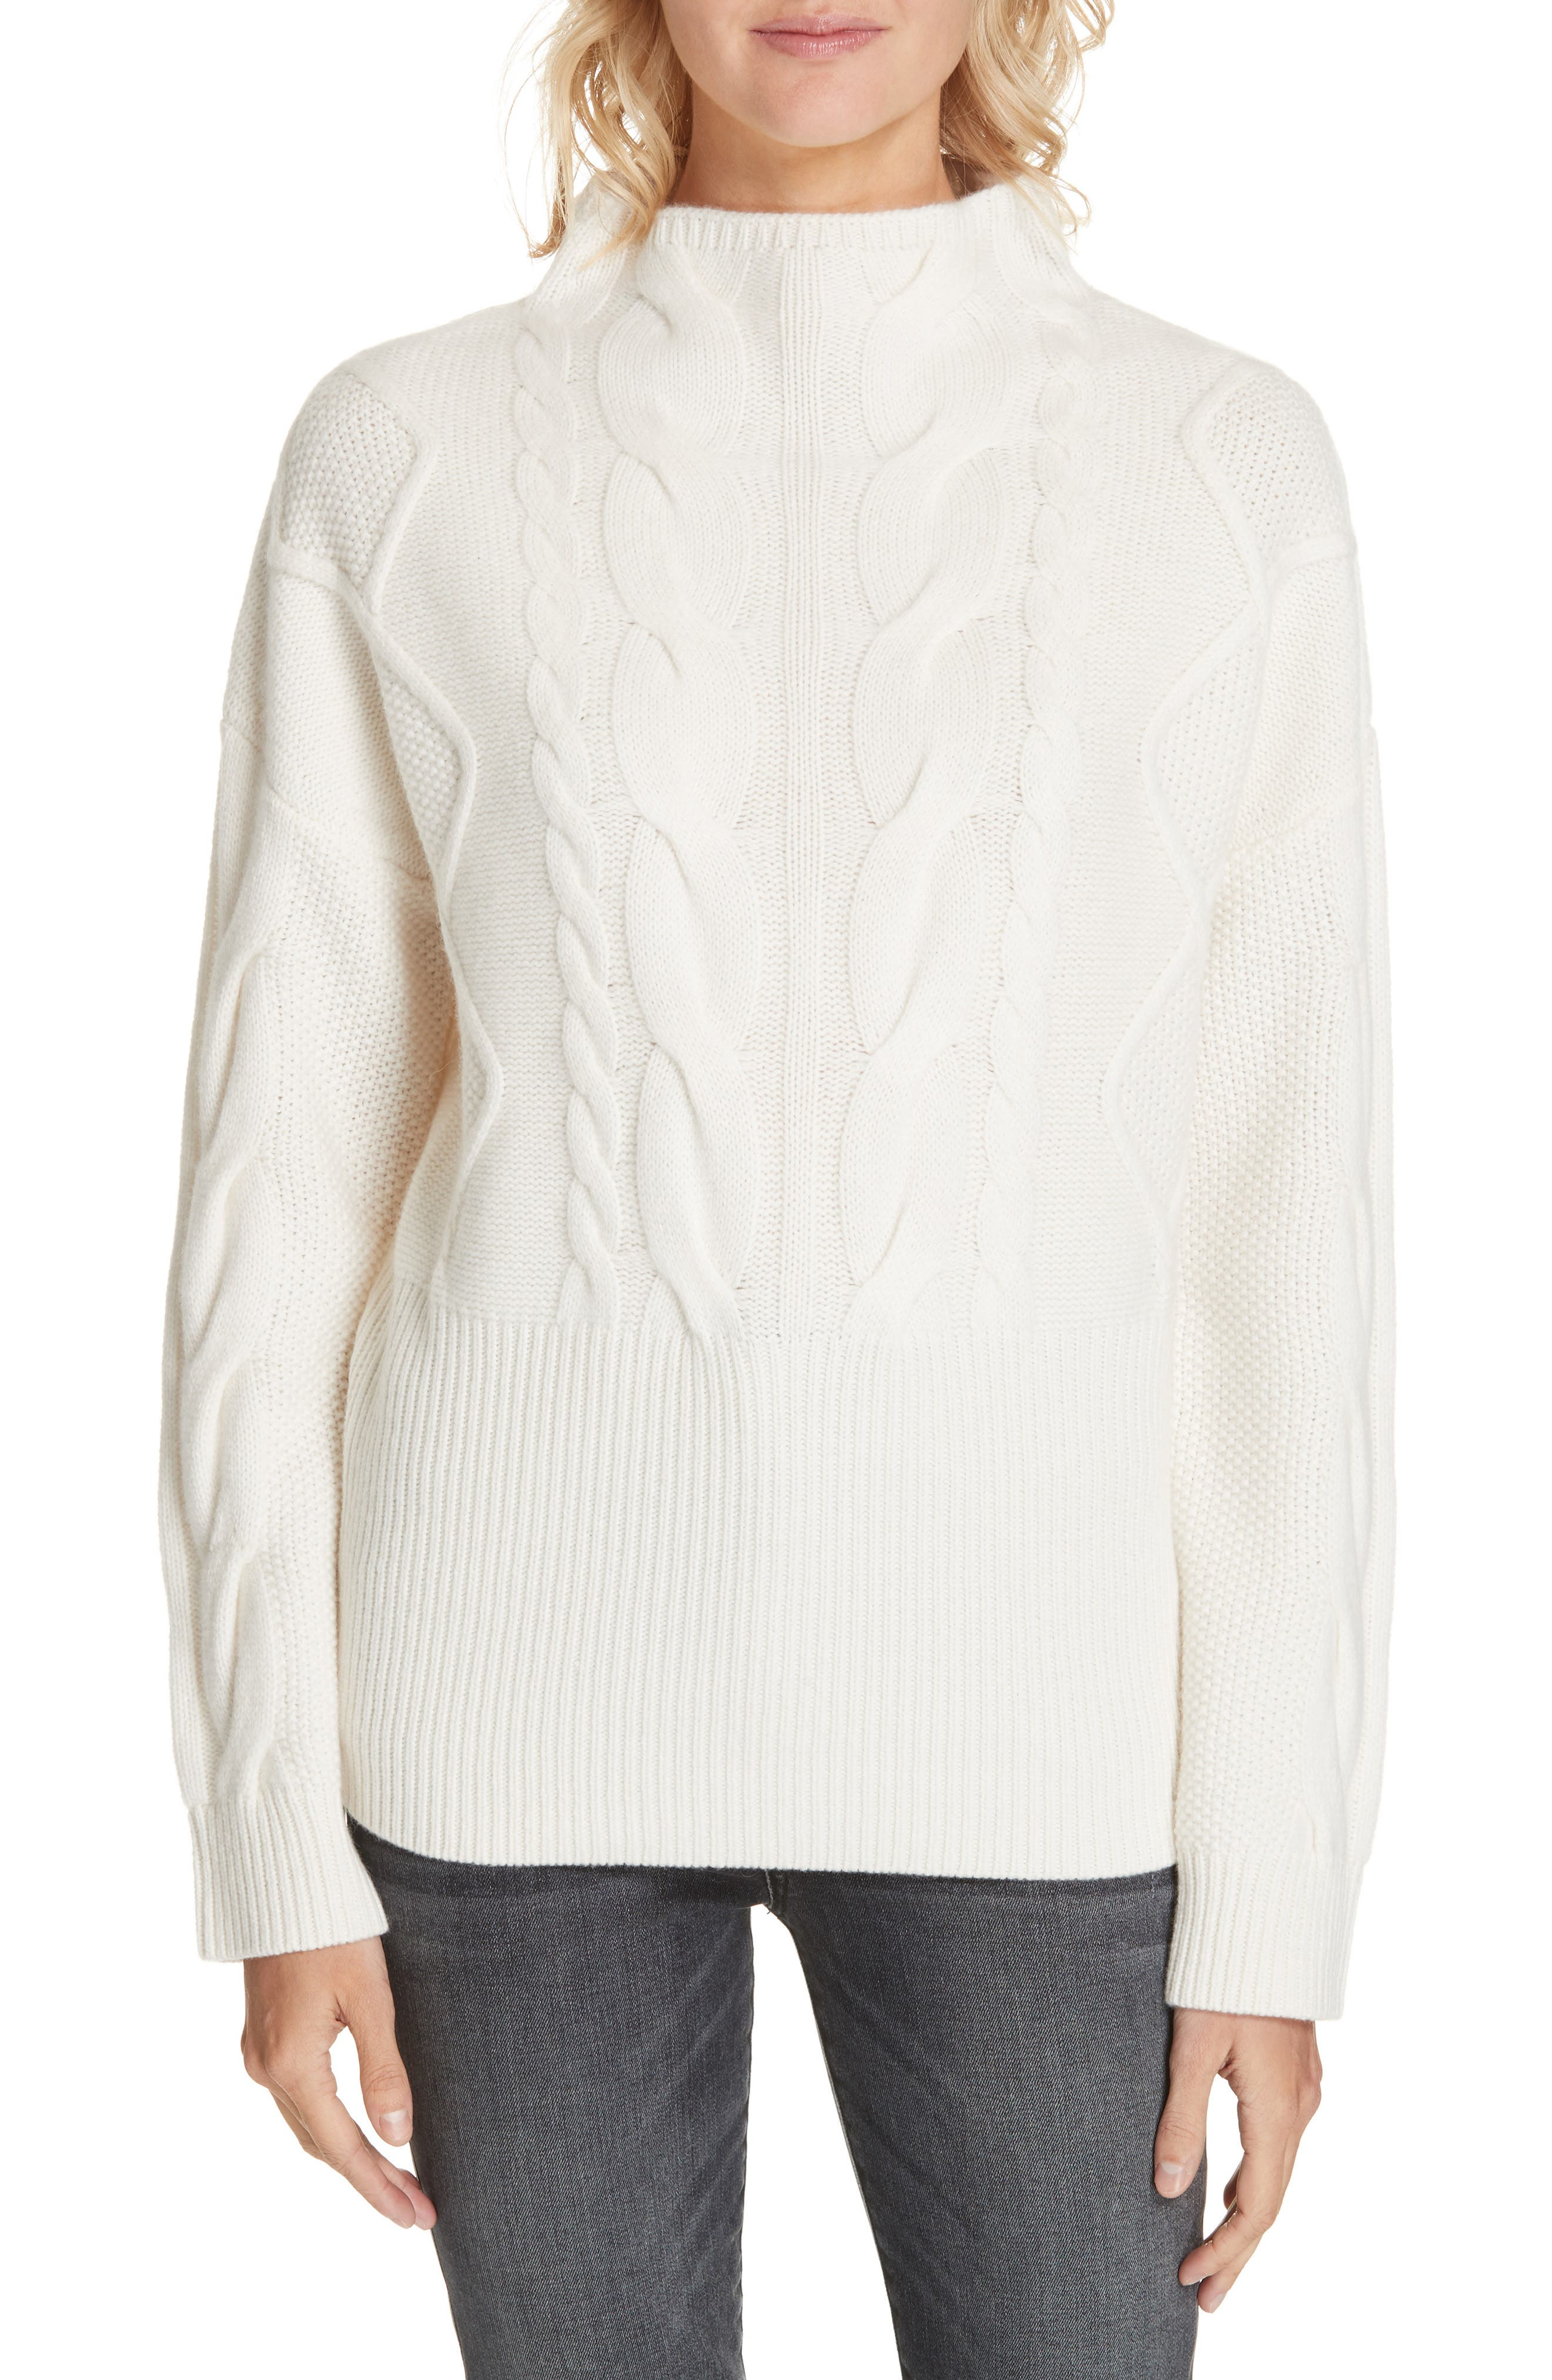 NORDSTROM SIGNATURE, Cable Cashmere Sweater, Main thumbnail 1, color, 900